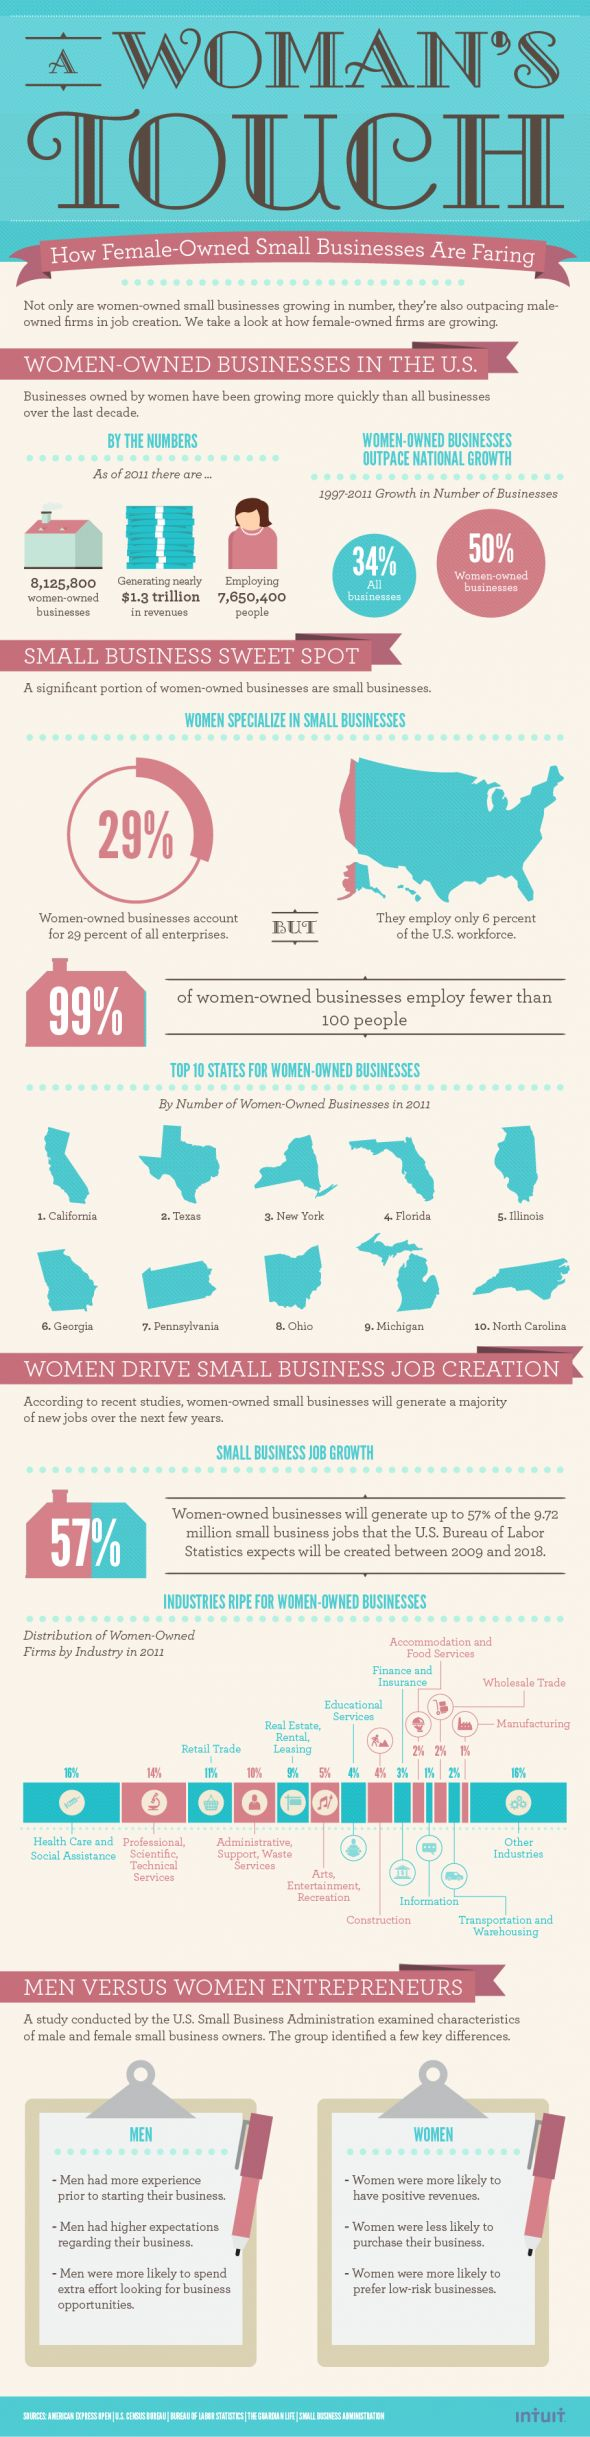 female-owned small business